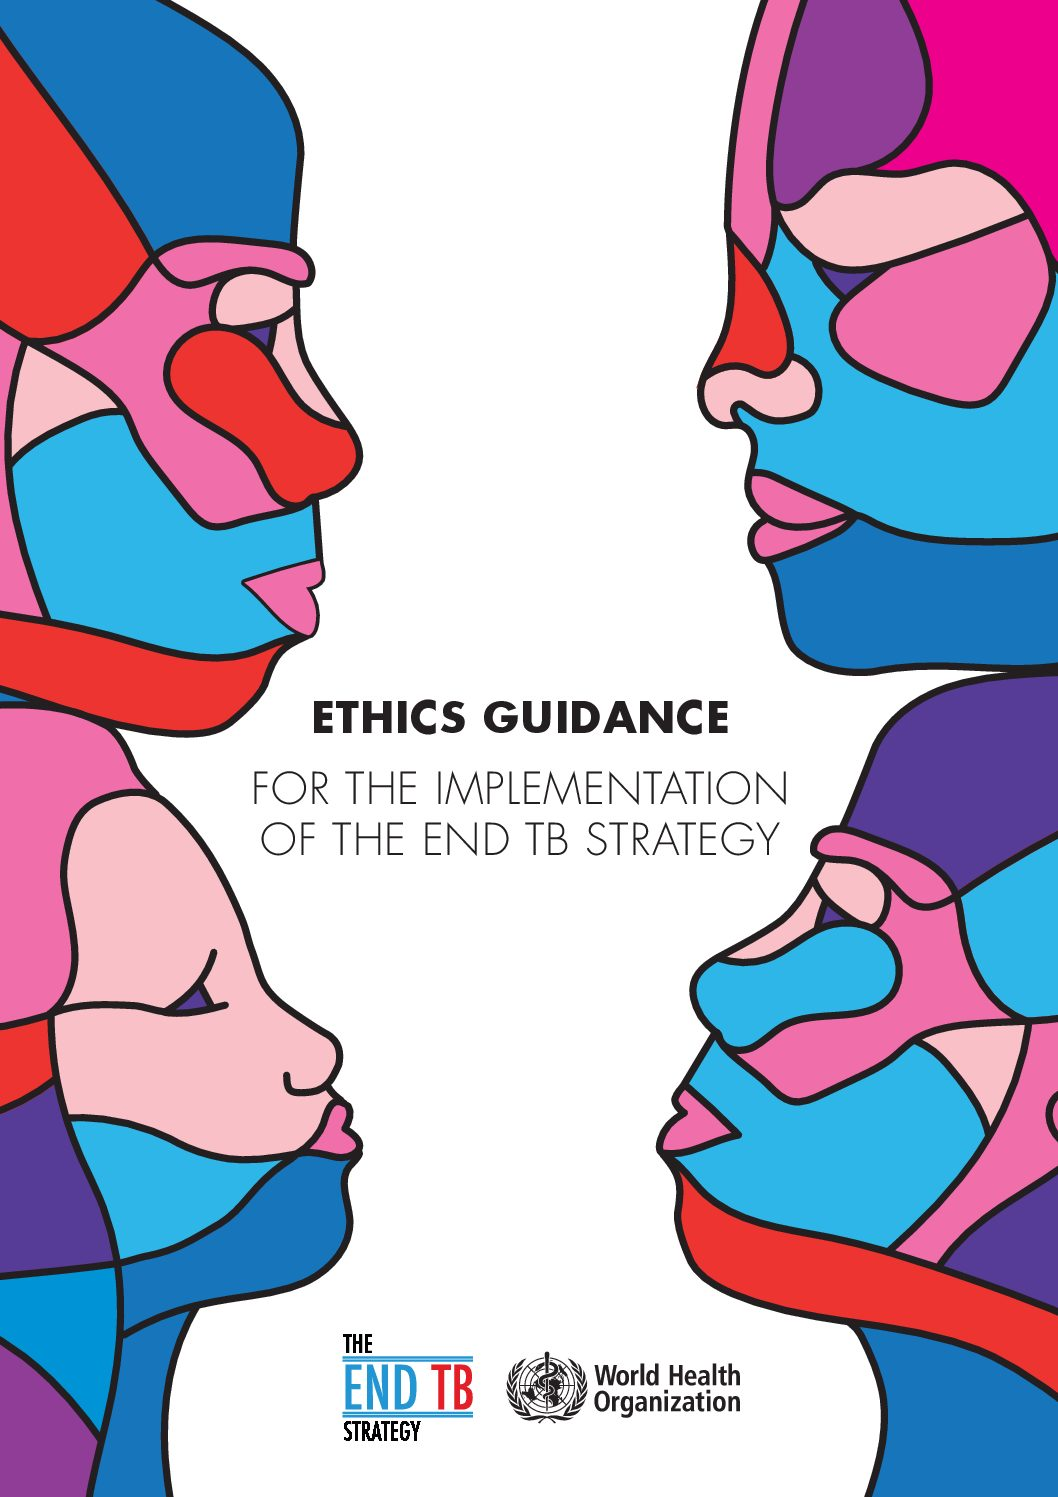 Ethics guidance for the implementation of the End TB strategy